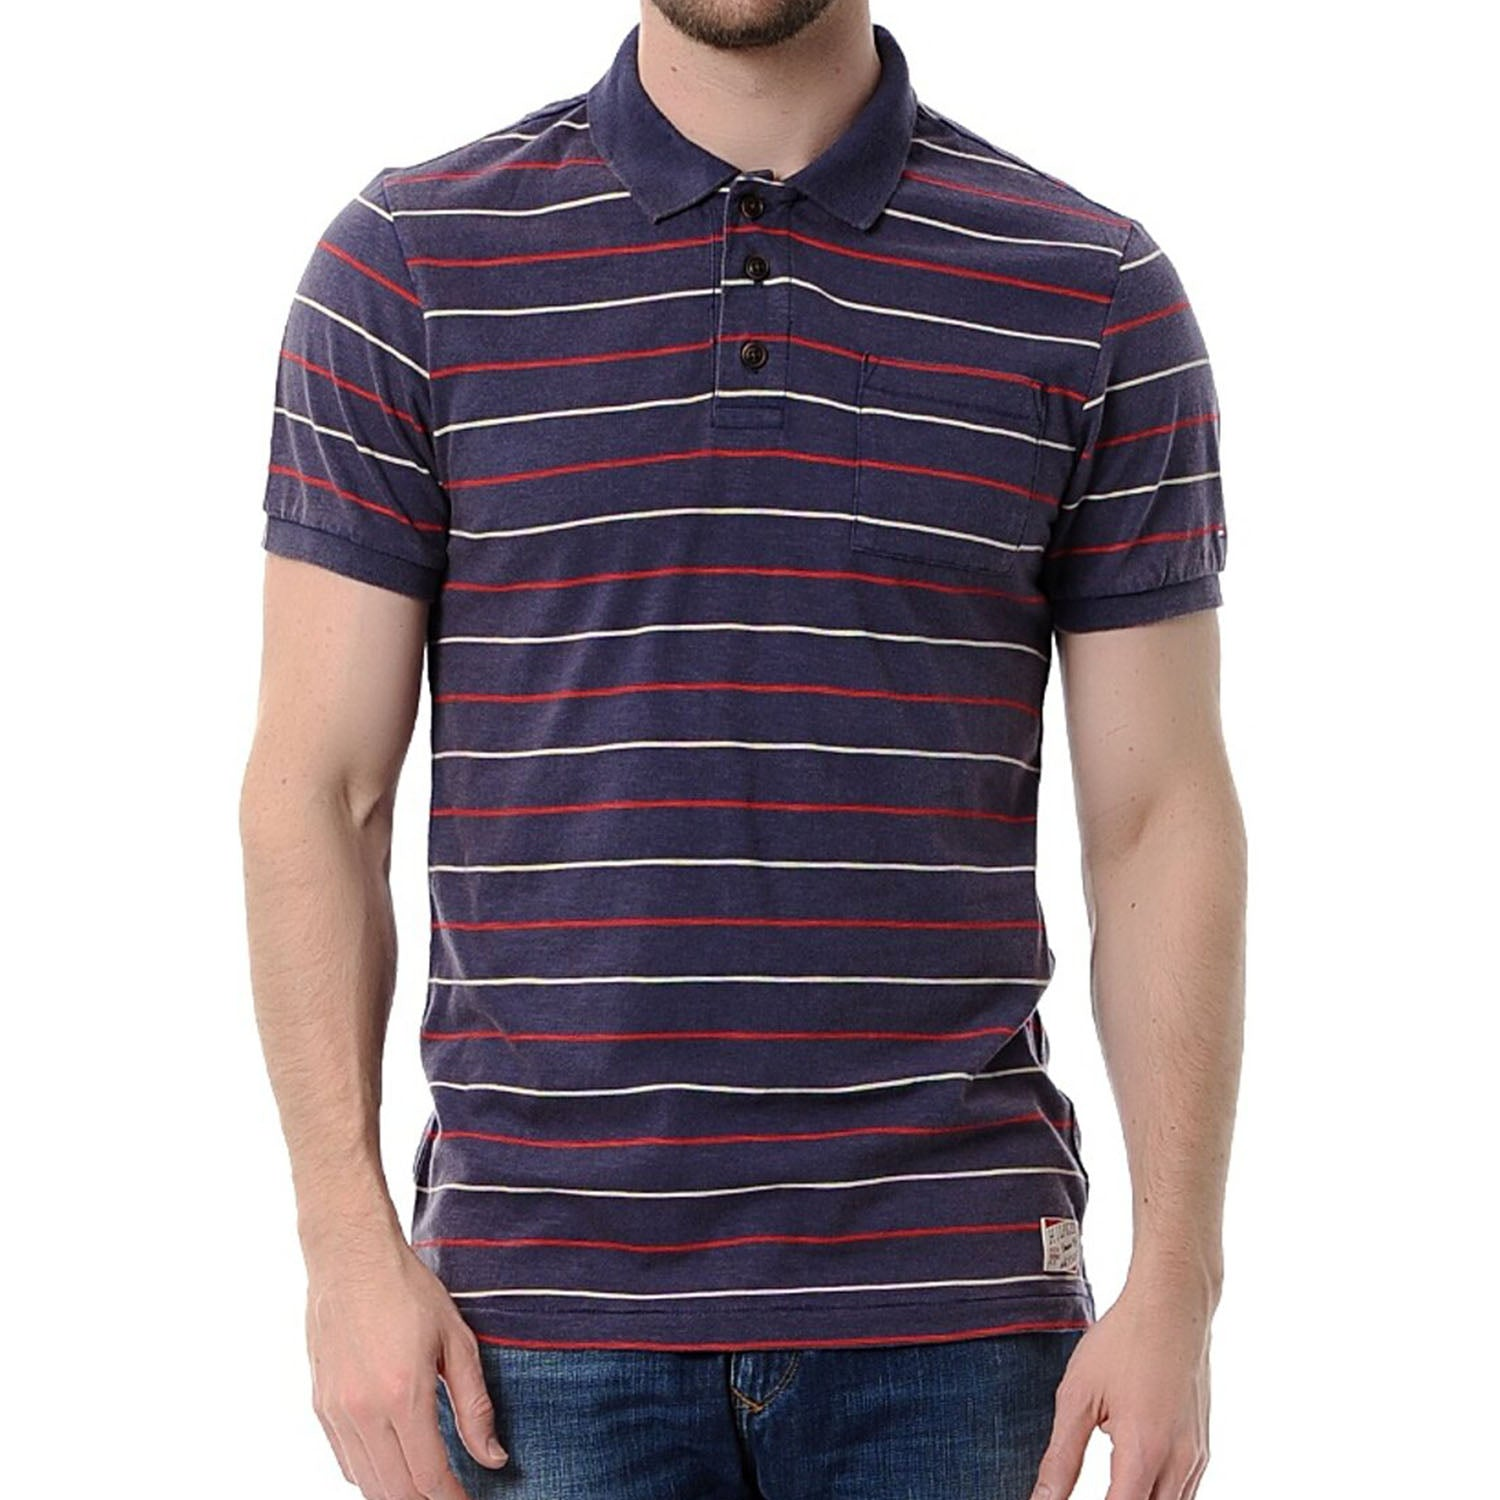 Hilfiger Denim Andy Block Stripes Polo T-Shirt